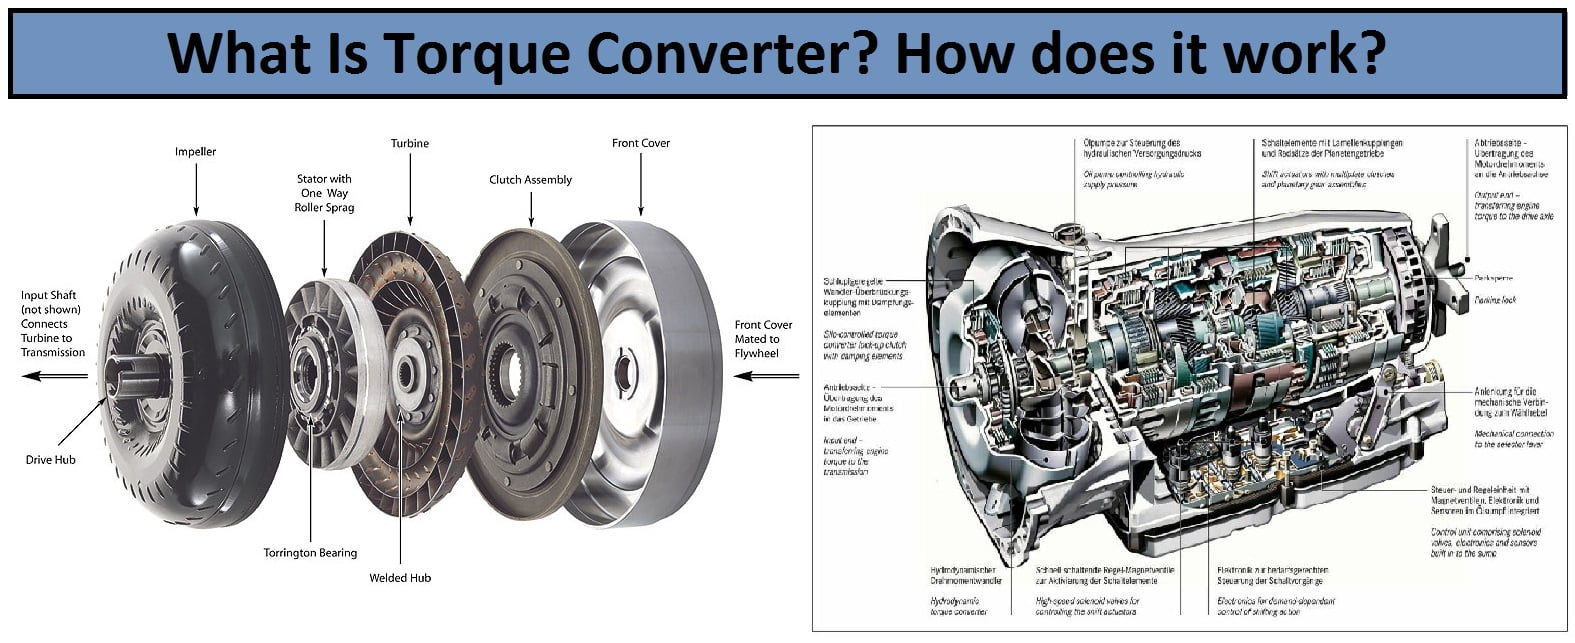 Torque Converter How It Works : What is torque converter how does it work engineering